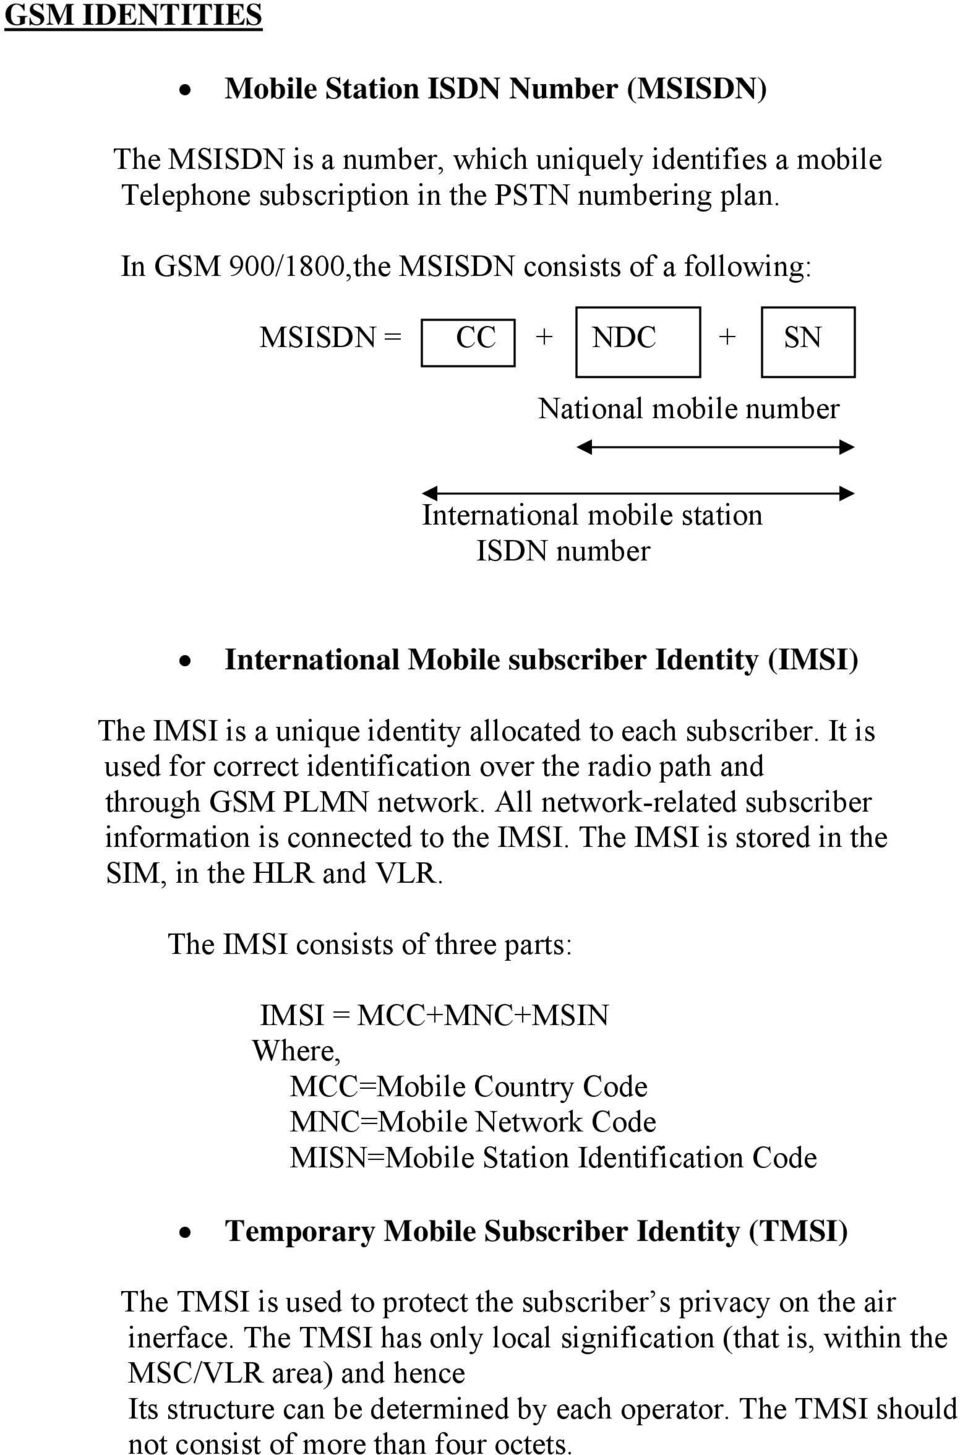 a unique identity allocated to each subscriber. It is used for correct identification over the radio path and through GSM PLMN network.